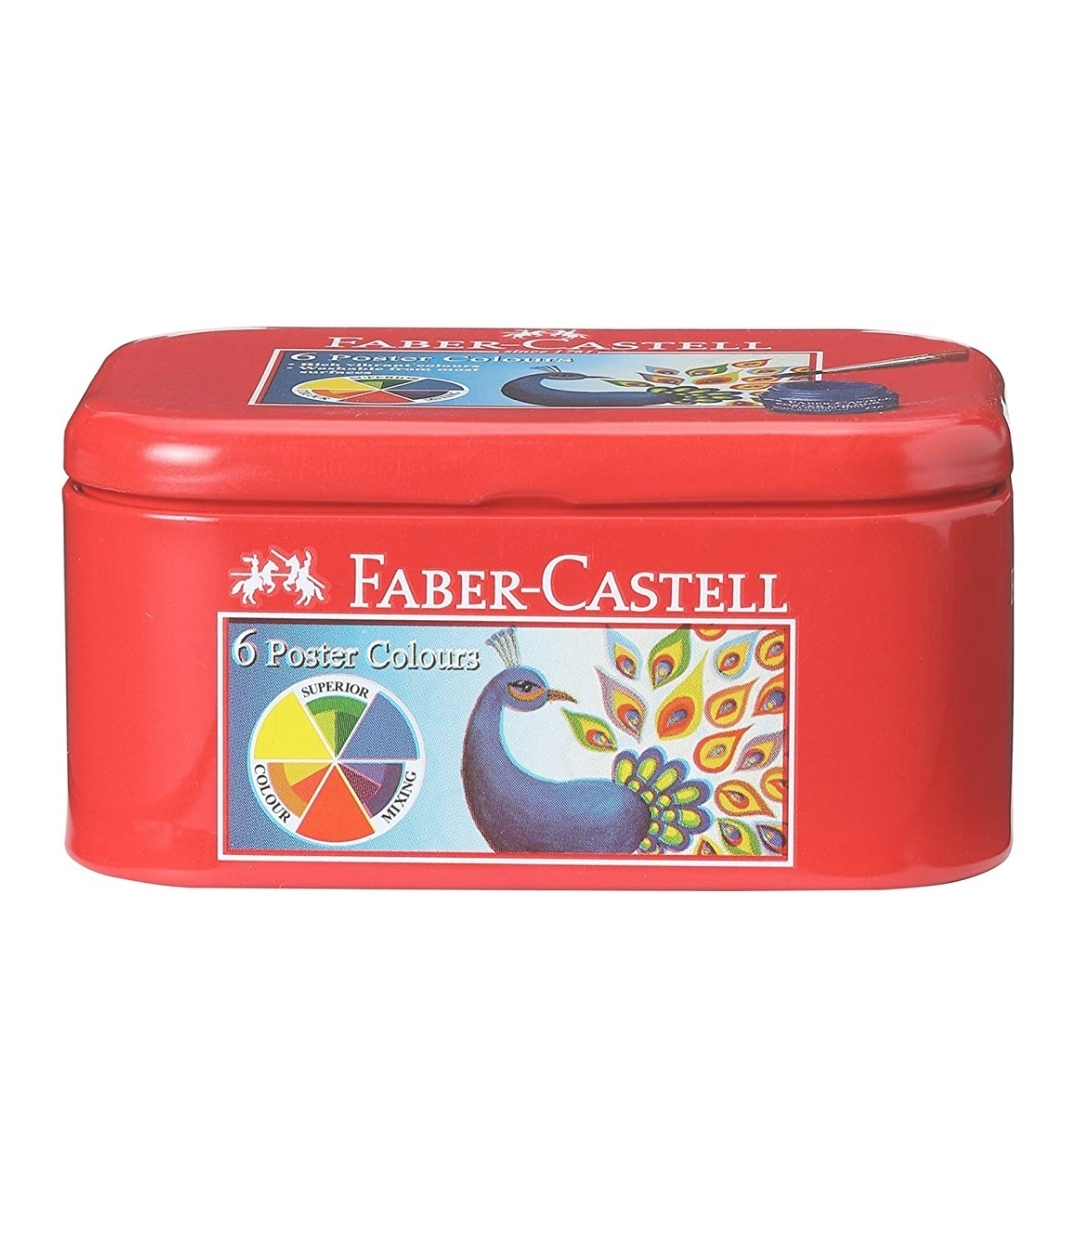 Faber Castell Poster Colours Set of 6 Shades